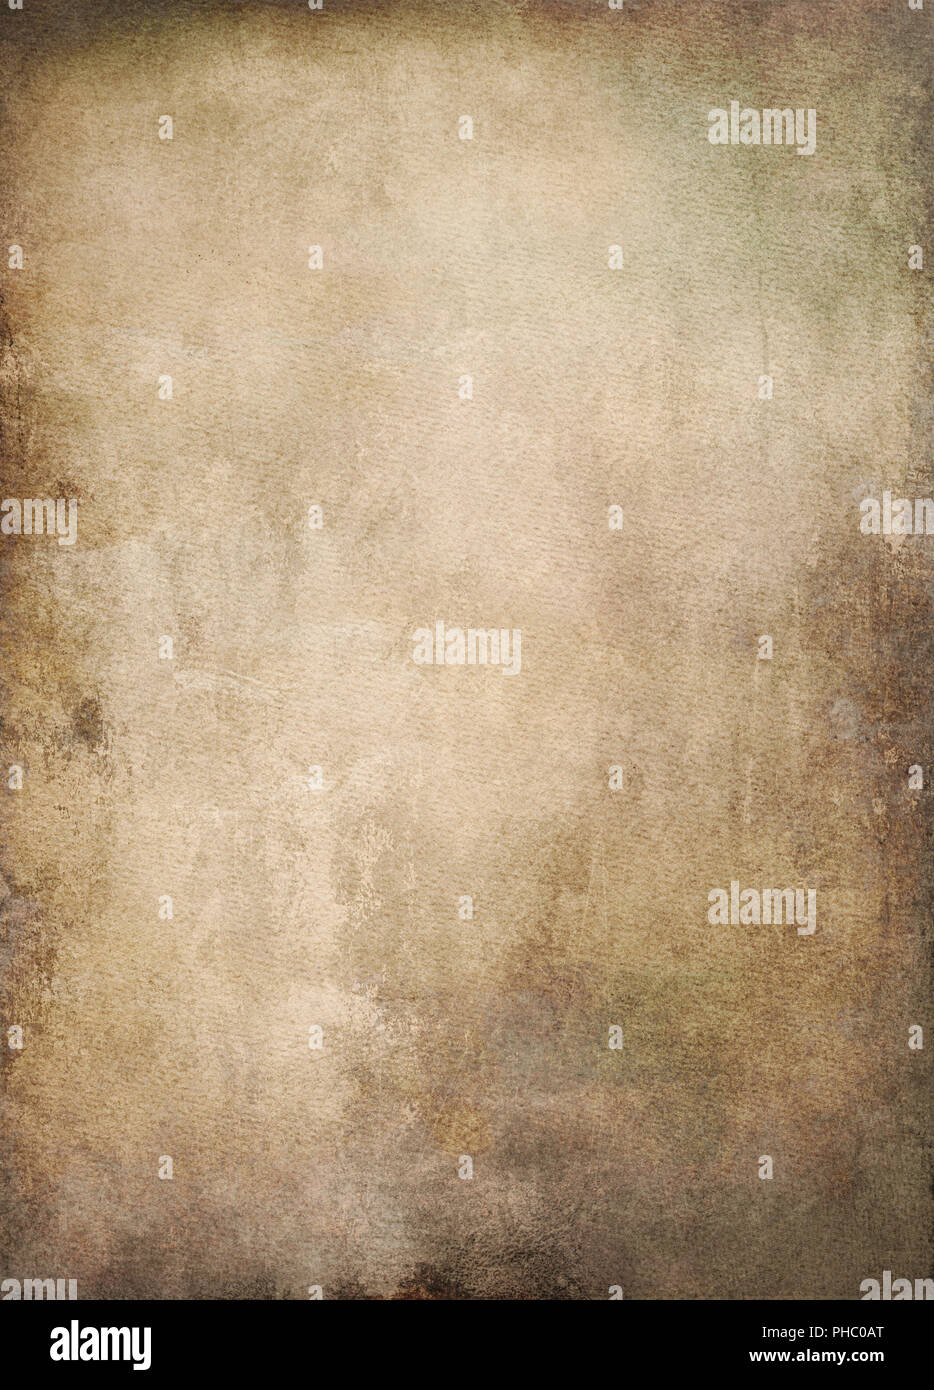 old paper background textures shading - Stock Image